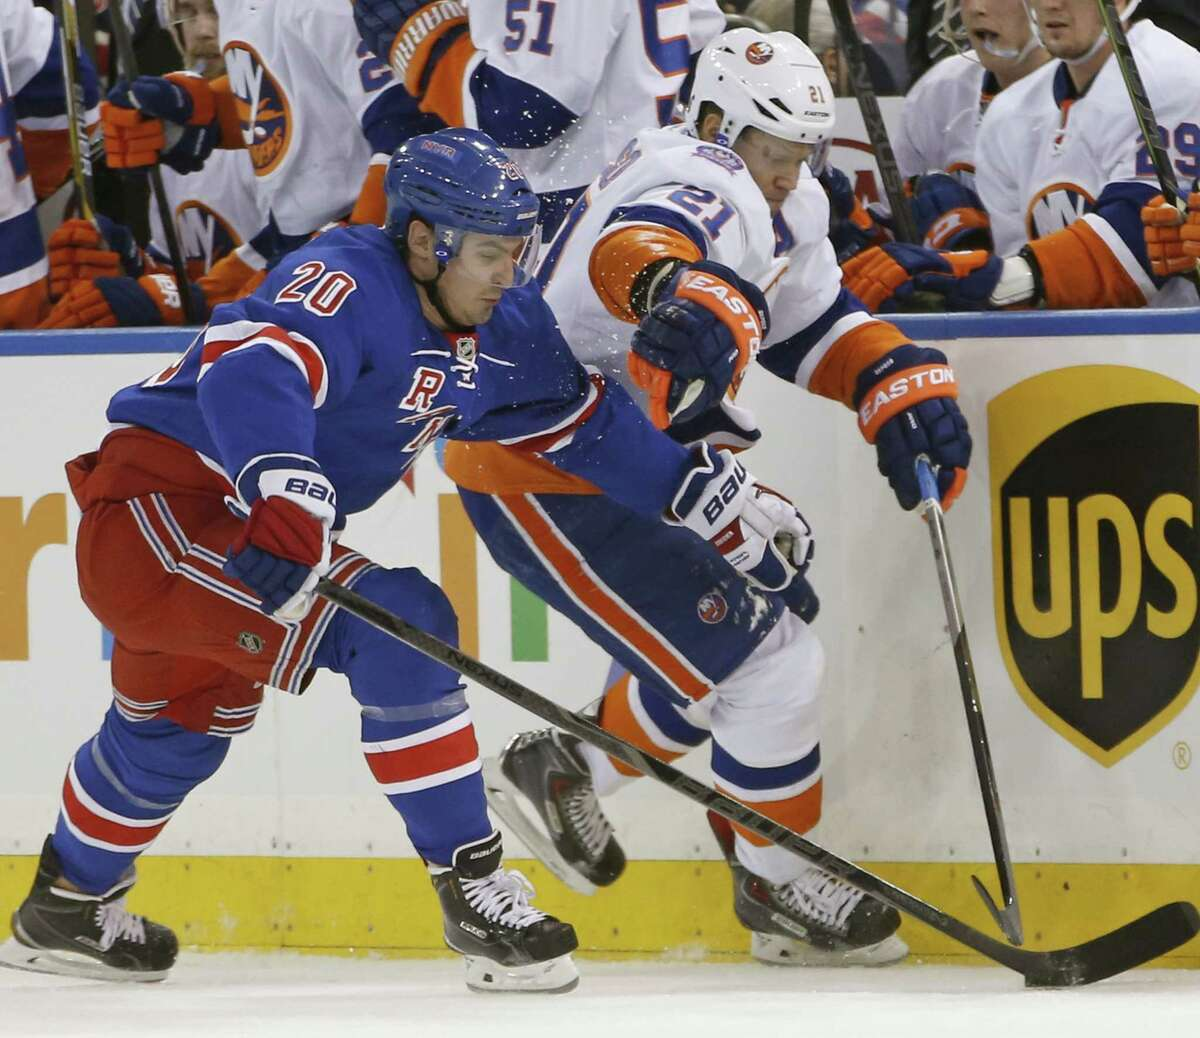 Rangers left wing Chris Kreider (20) fends off New York Islanders right wing Kyle Okposo (21) during a Jan. 13 game at Madison Square Garden in New York.